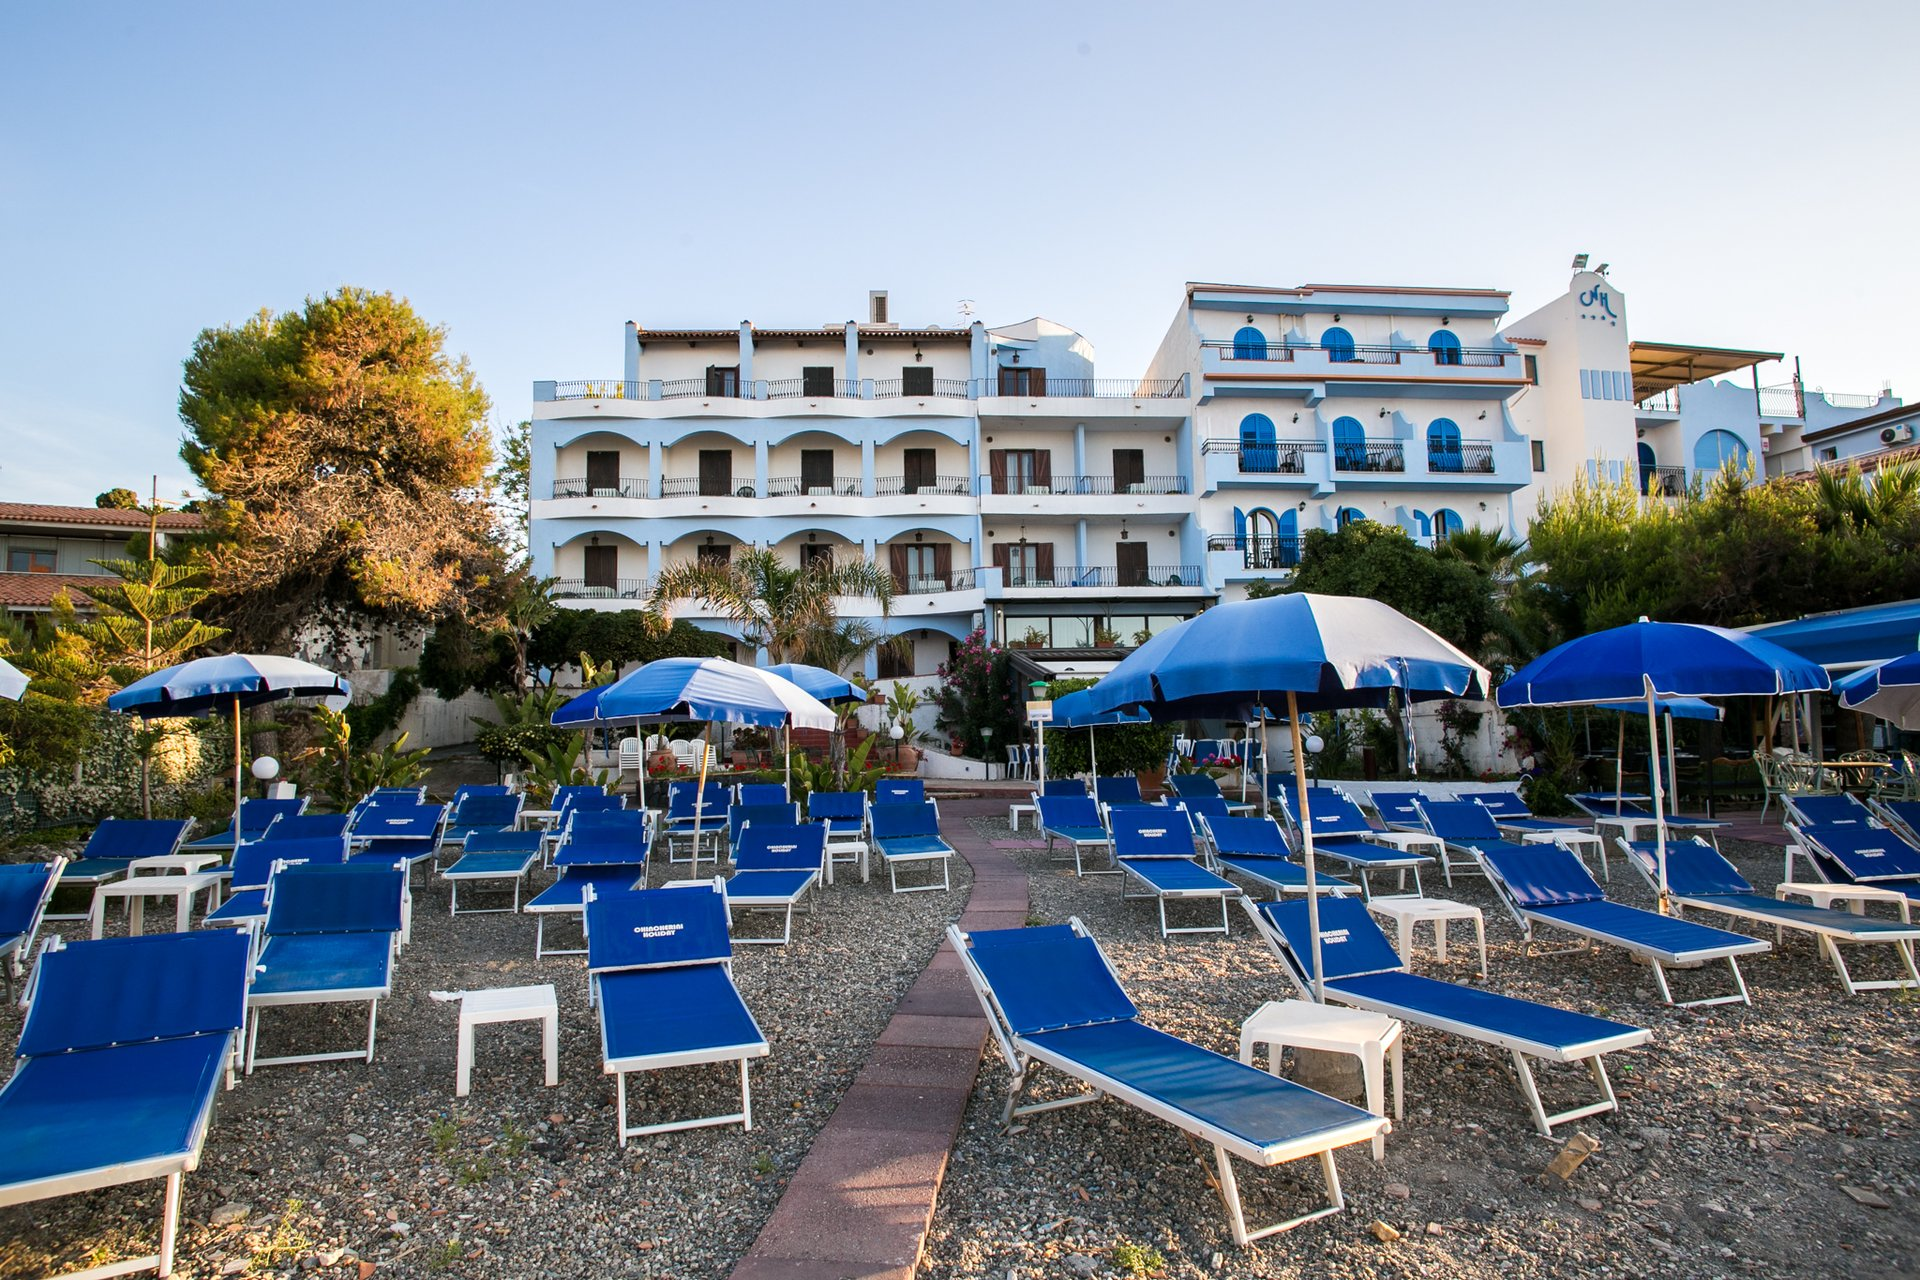 Hotel Nike Giardini Naxos Chincherini Hotels Official Website